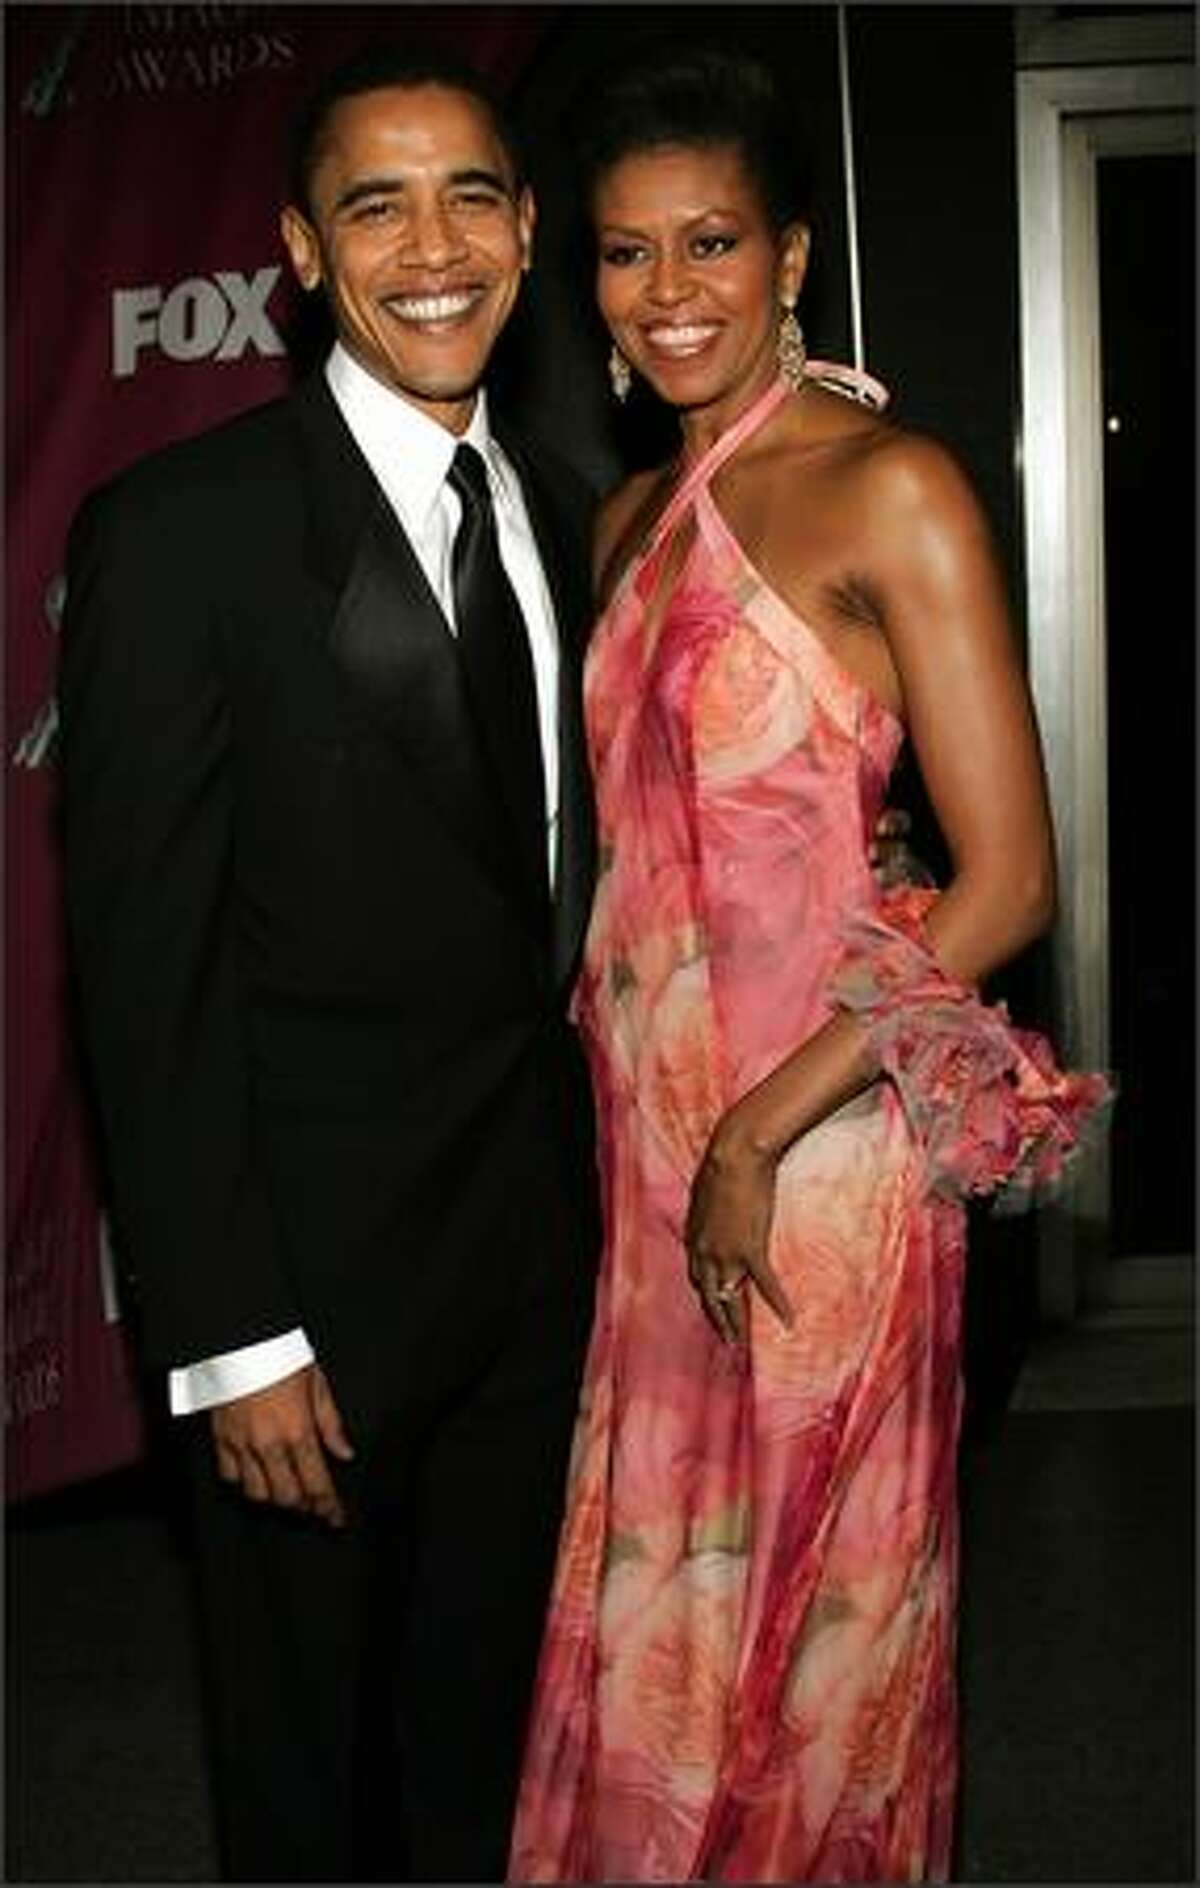 Senator Barack Obama and his wife Michelle arrive at the 36th NAACP Image Awards at the Dorothy Chandler Pavilion on March 19, 2005, in Los Angeles, California.